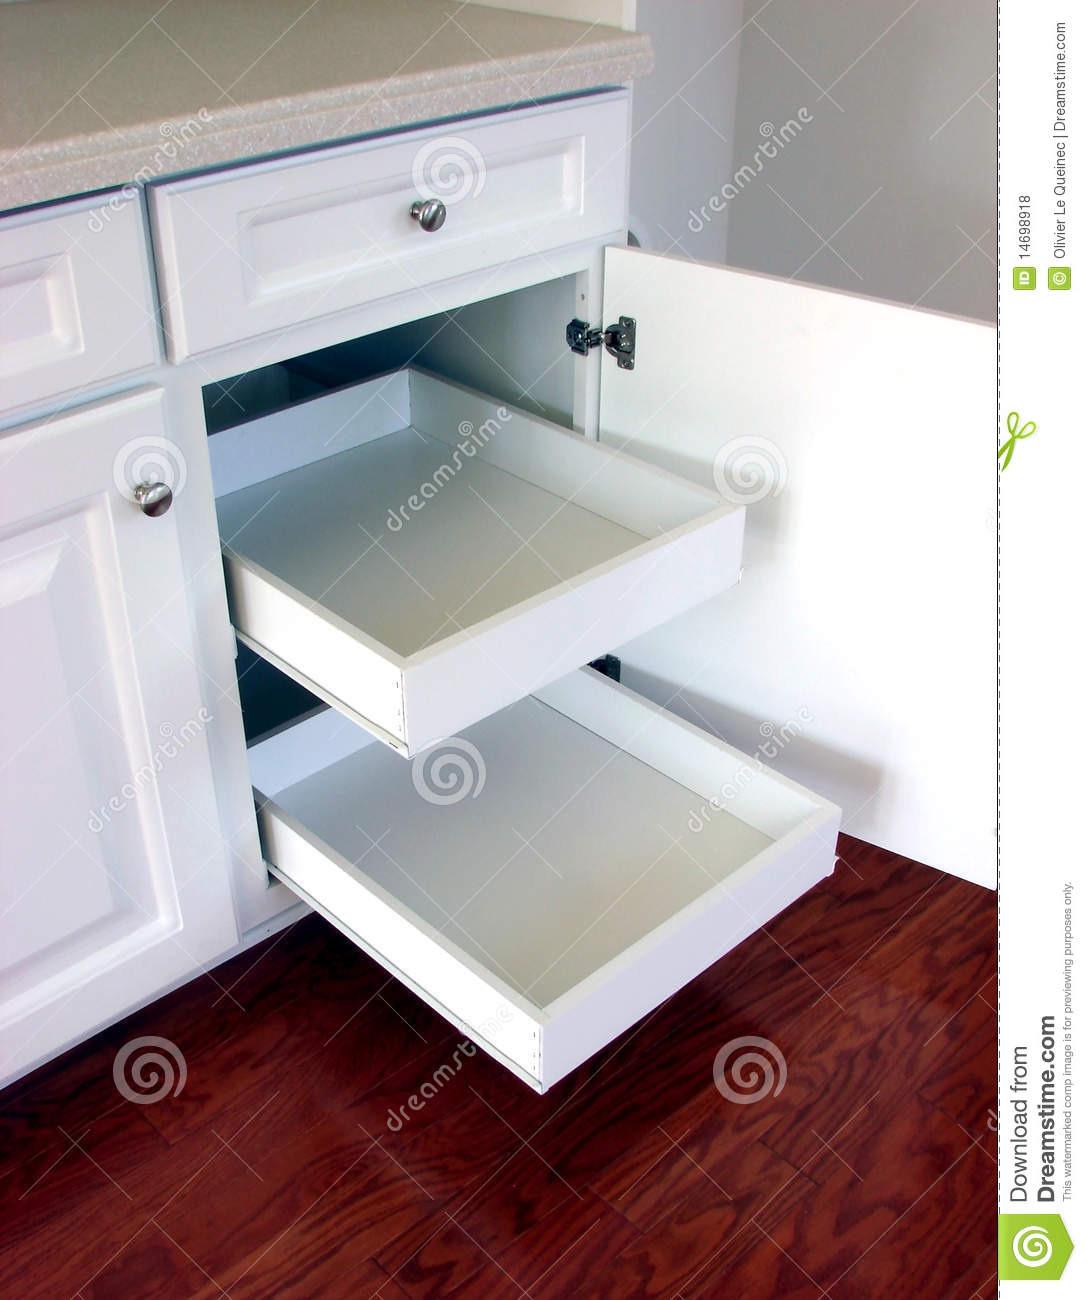 Pull out kitchen drawers shelves in a modern house royalty free stock